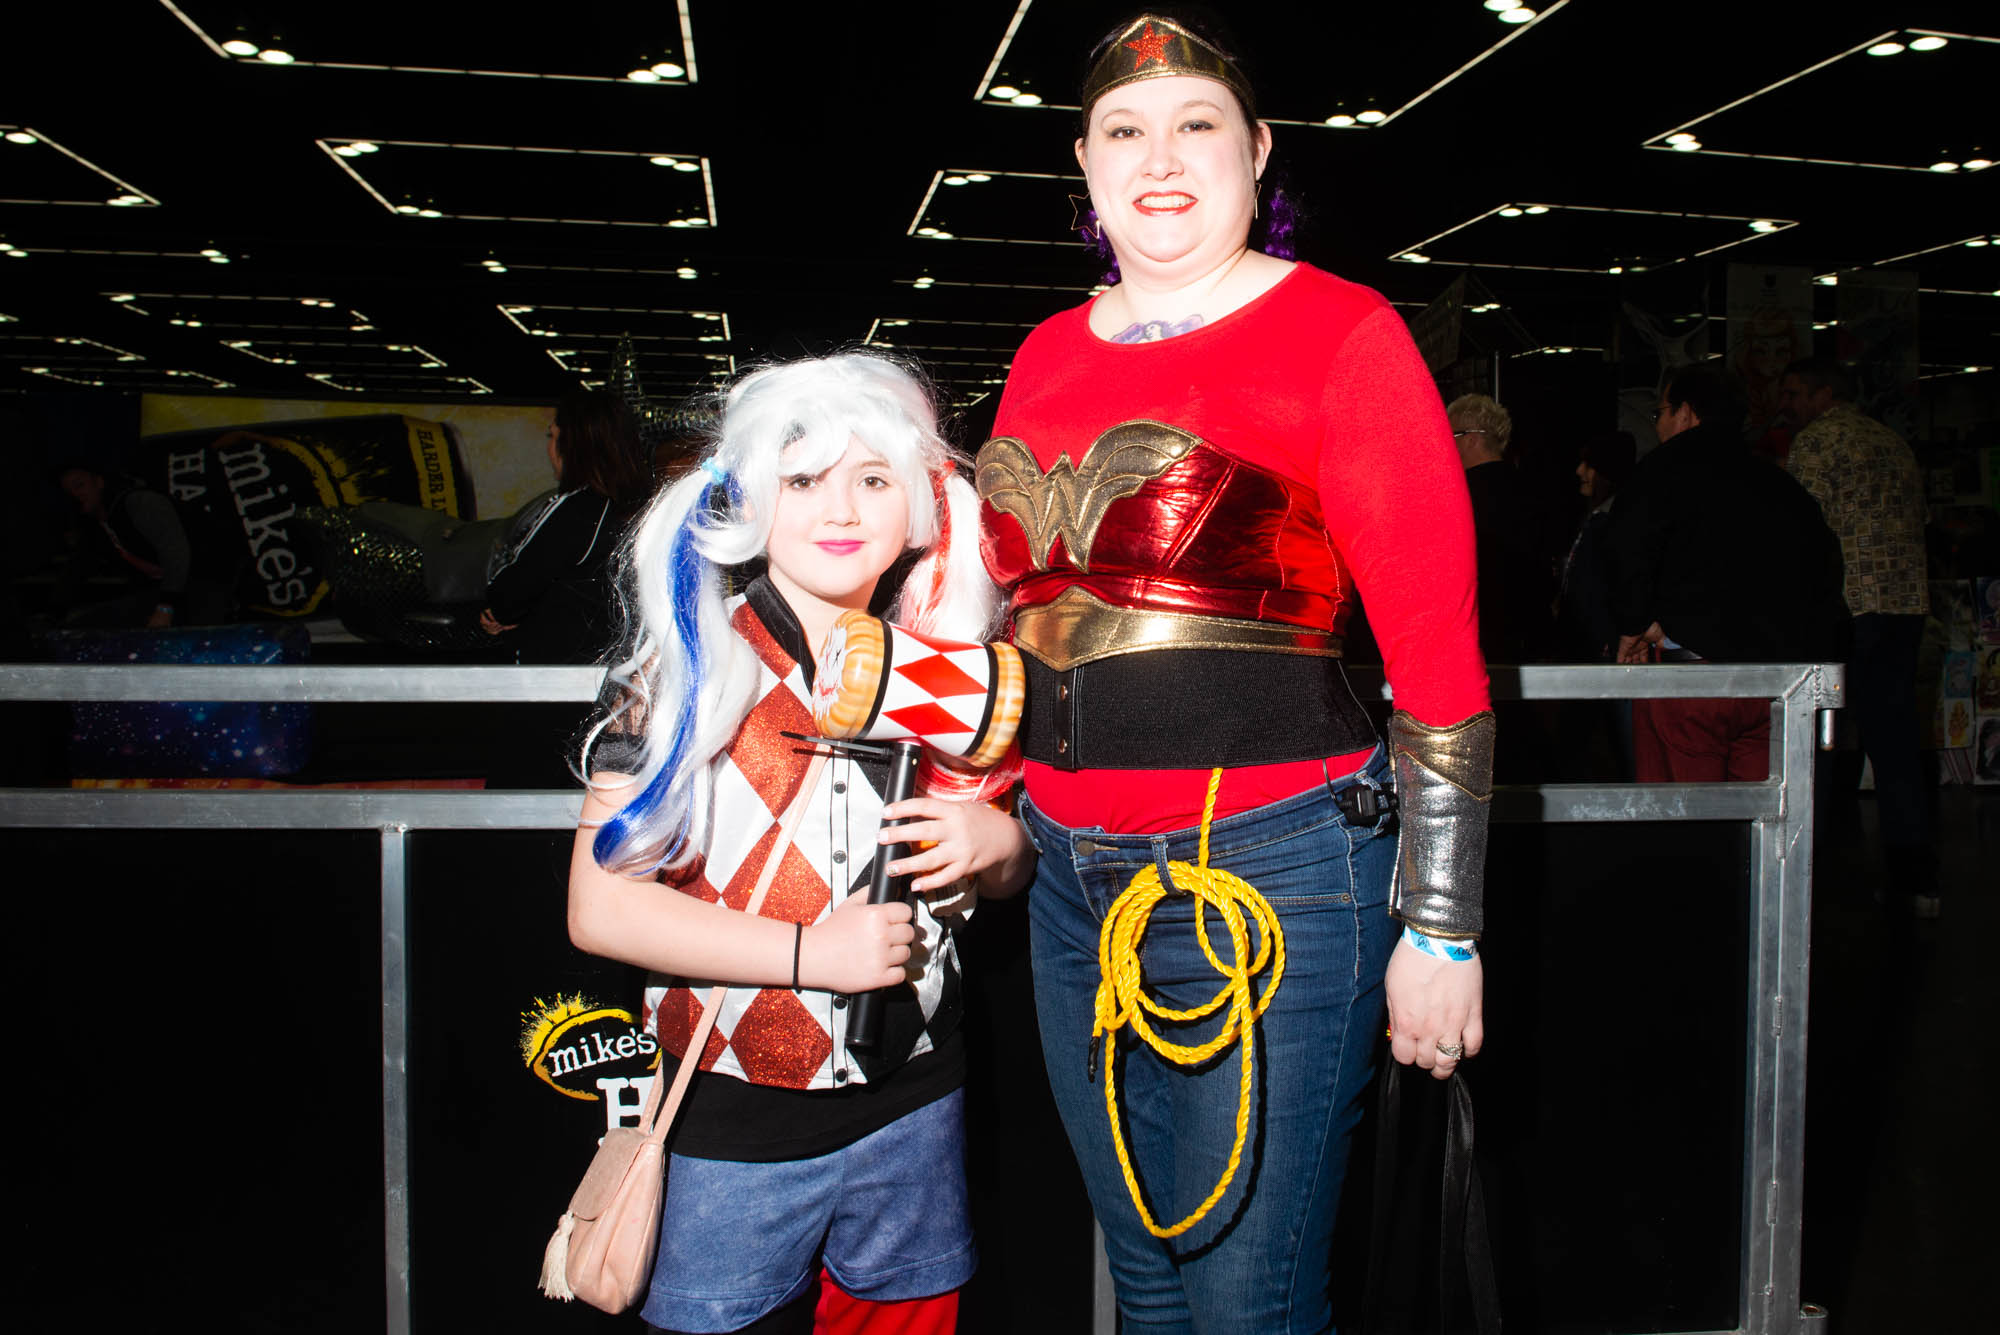 Wizard World Portland Comic Con celebrates cosplay, graphic novels, TV, gaming - you name it! Thousands swarmed the Oregon Convention Center in downtown Portland for the final day of the three-day event, dressed to the absolute nines. Click on for some of the most incredible con-ing you've likely ever seen! (Image: Chona Kasinger / Seattle Refined)